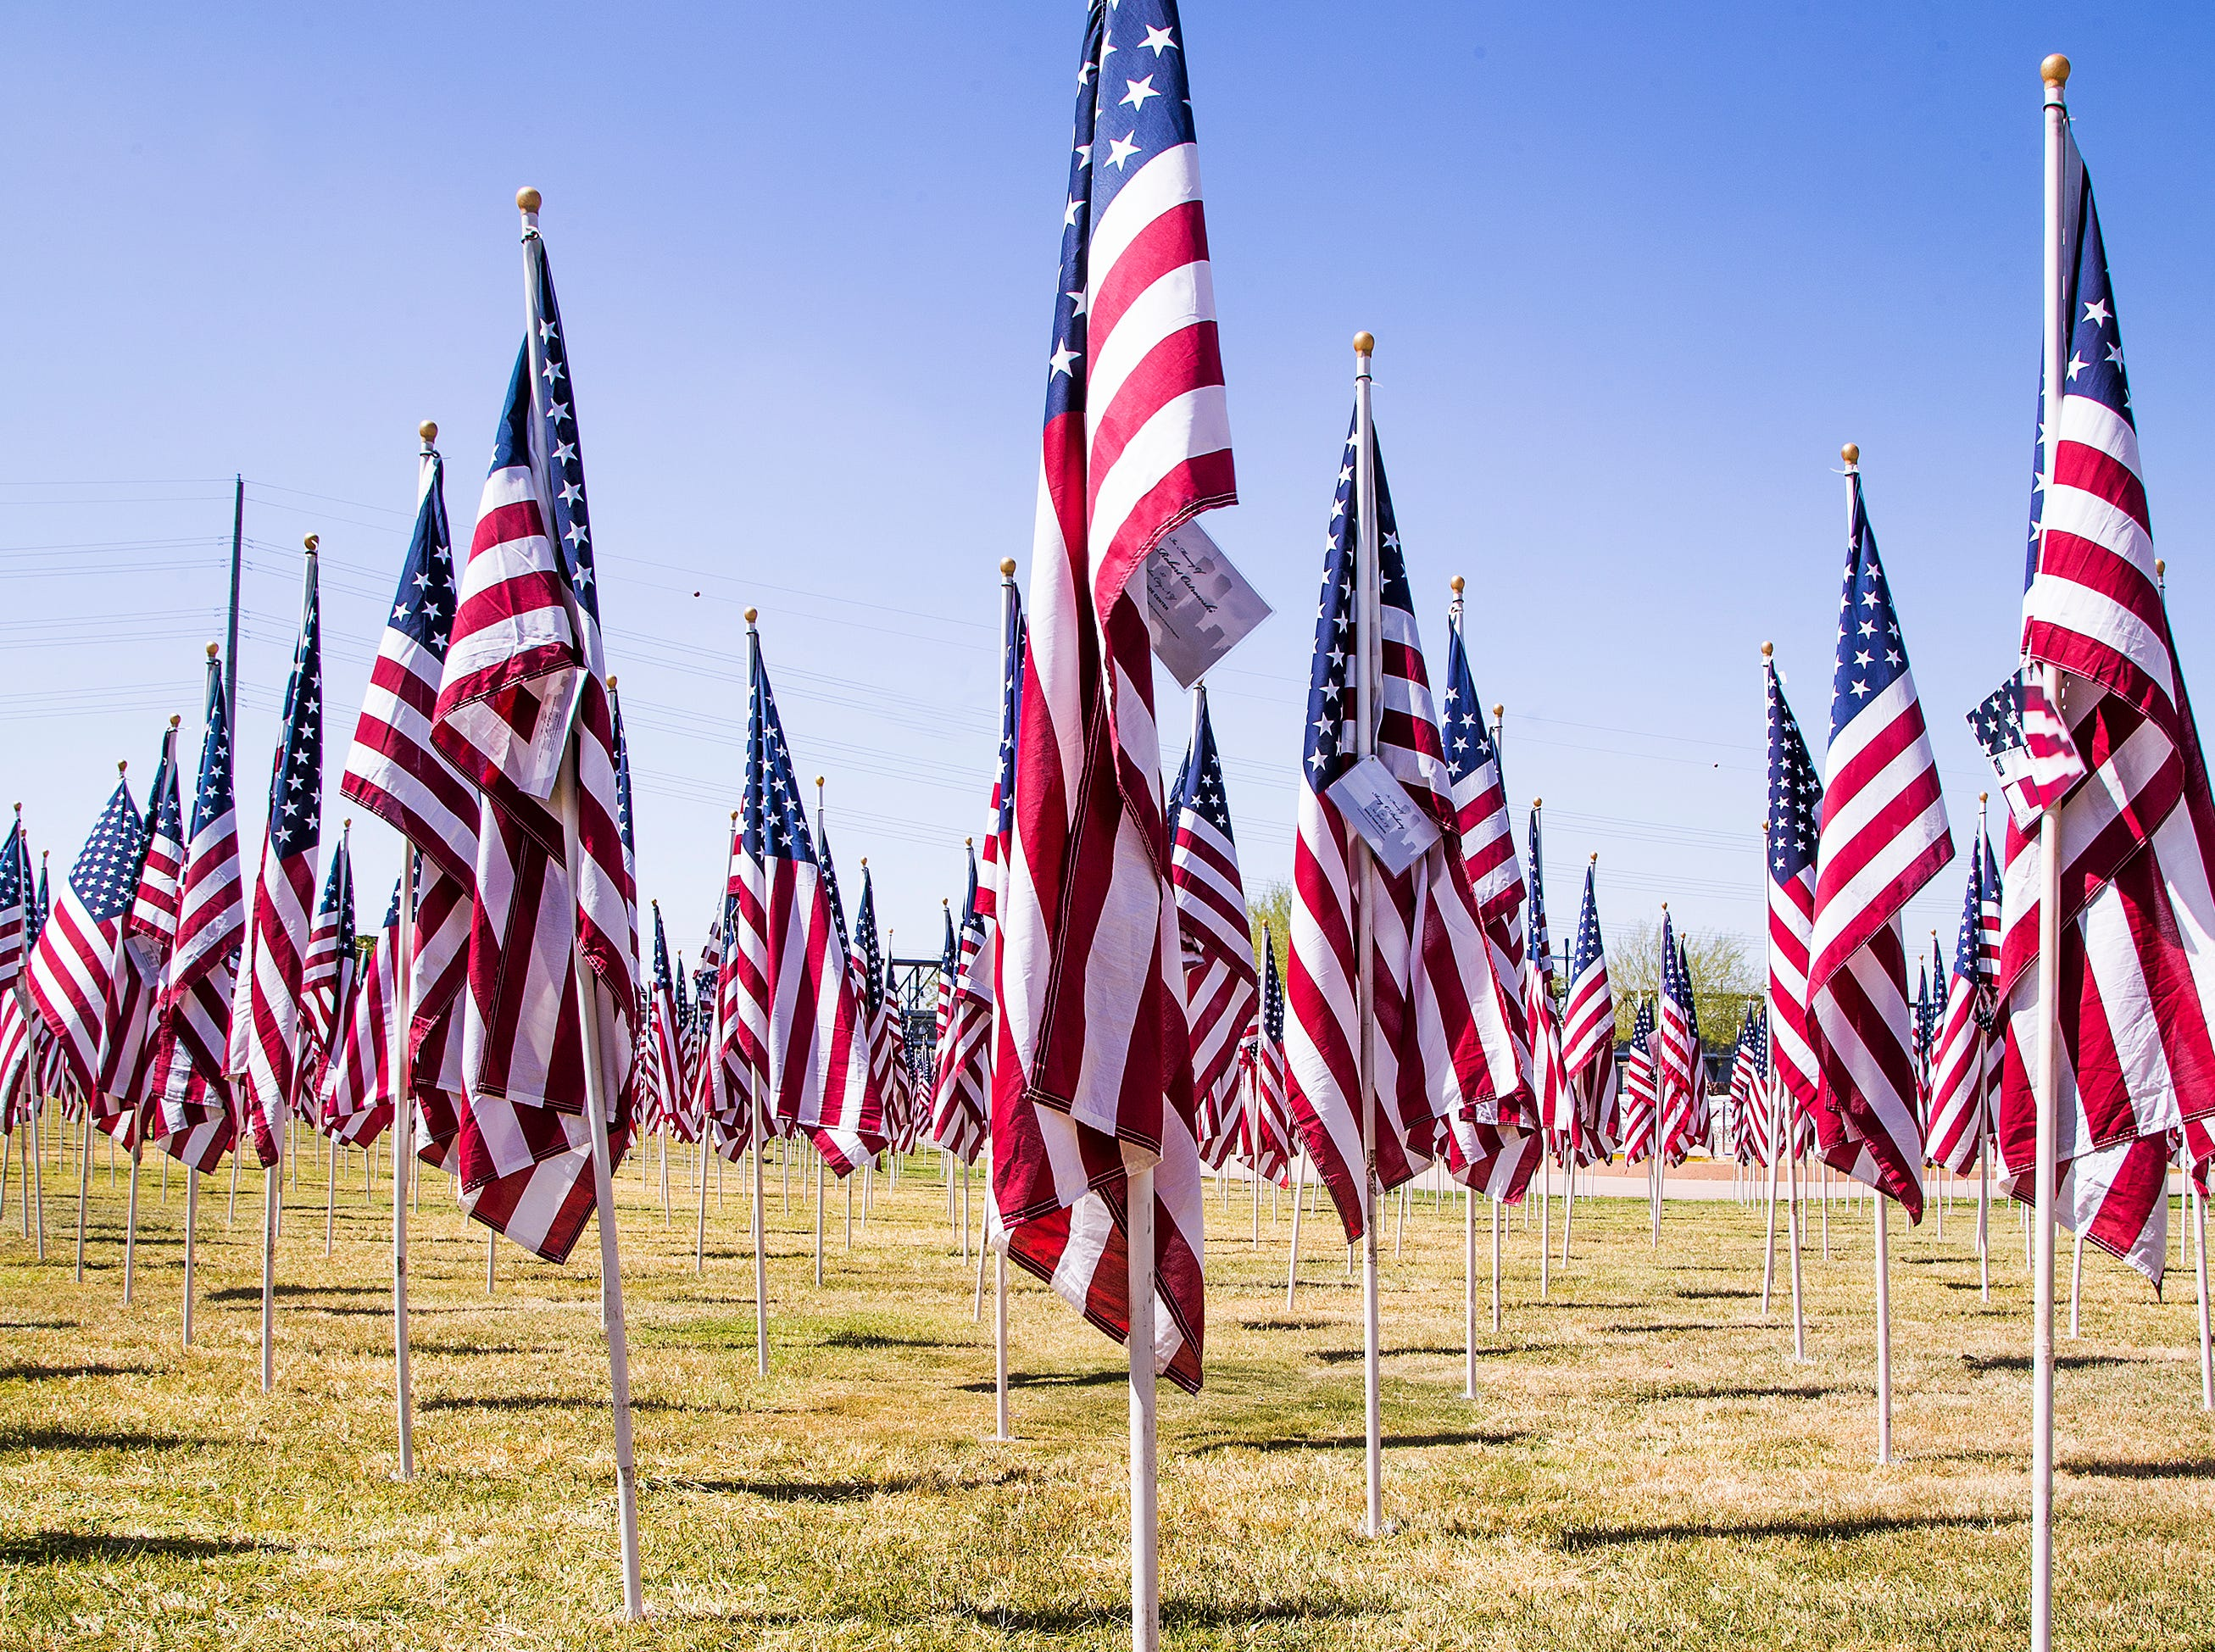 Almost 3,000 flags have been placed in the Healing Field at Tempe Beach Park to honor those killed on Sept. 11, 2001.